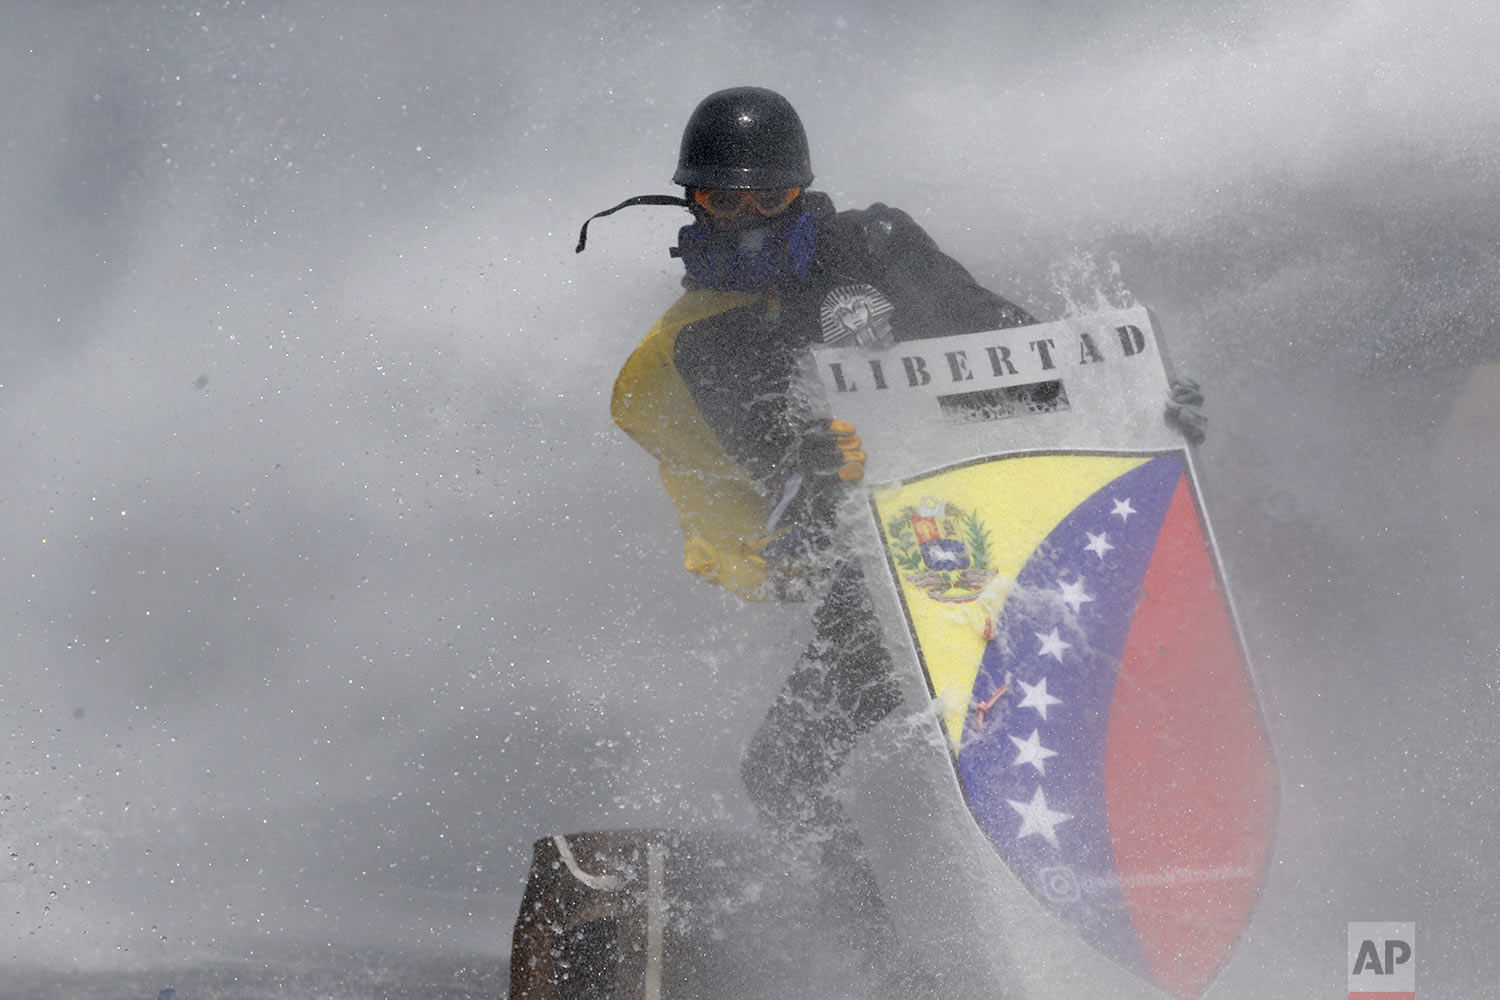 "Engulfed in a cloud of tear gas, an anti-government protester protects himself from a jet of water with a shield bearing the Spanish word for ""Freedom"" during clashes with security forces in Caracas, Venezuela, Wednesday, May 10, 2017. Venezuelan state security forces systematically abused opposition protesters detained during months of deadly political unrest earlier this year, Human Rights Watch charged. (AP Photo/Ariana Cubillos, File)"